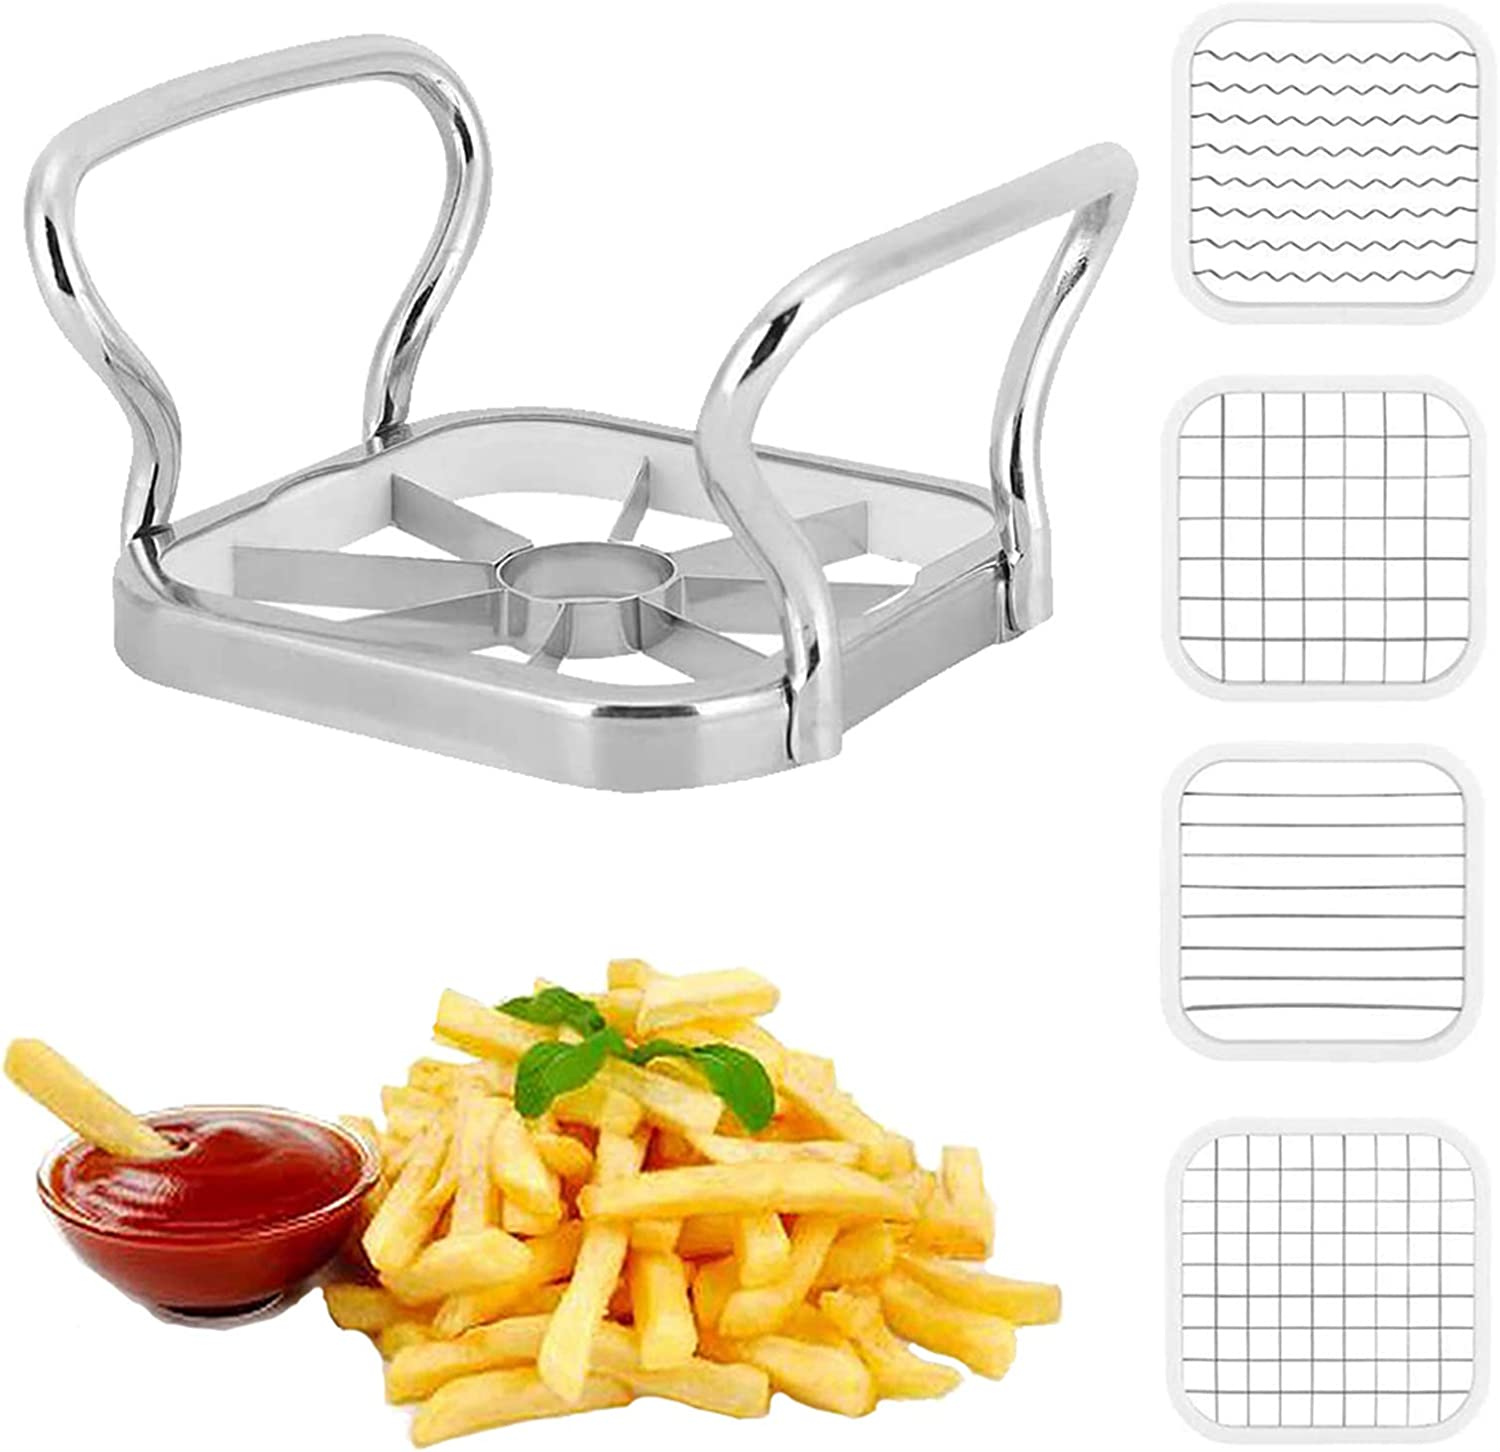 5 in 1 Potatoes Cutter with Thickened Sharp Blade Stainless Steel Potatoes Fruit Vegetable Cutter Chipper Chopper